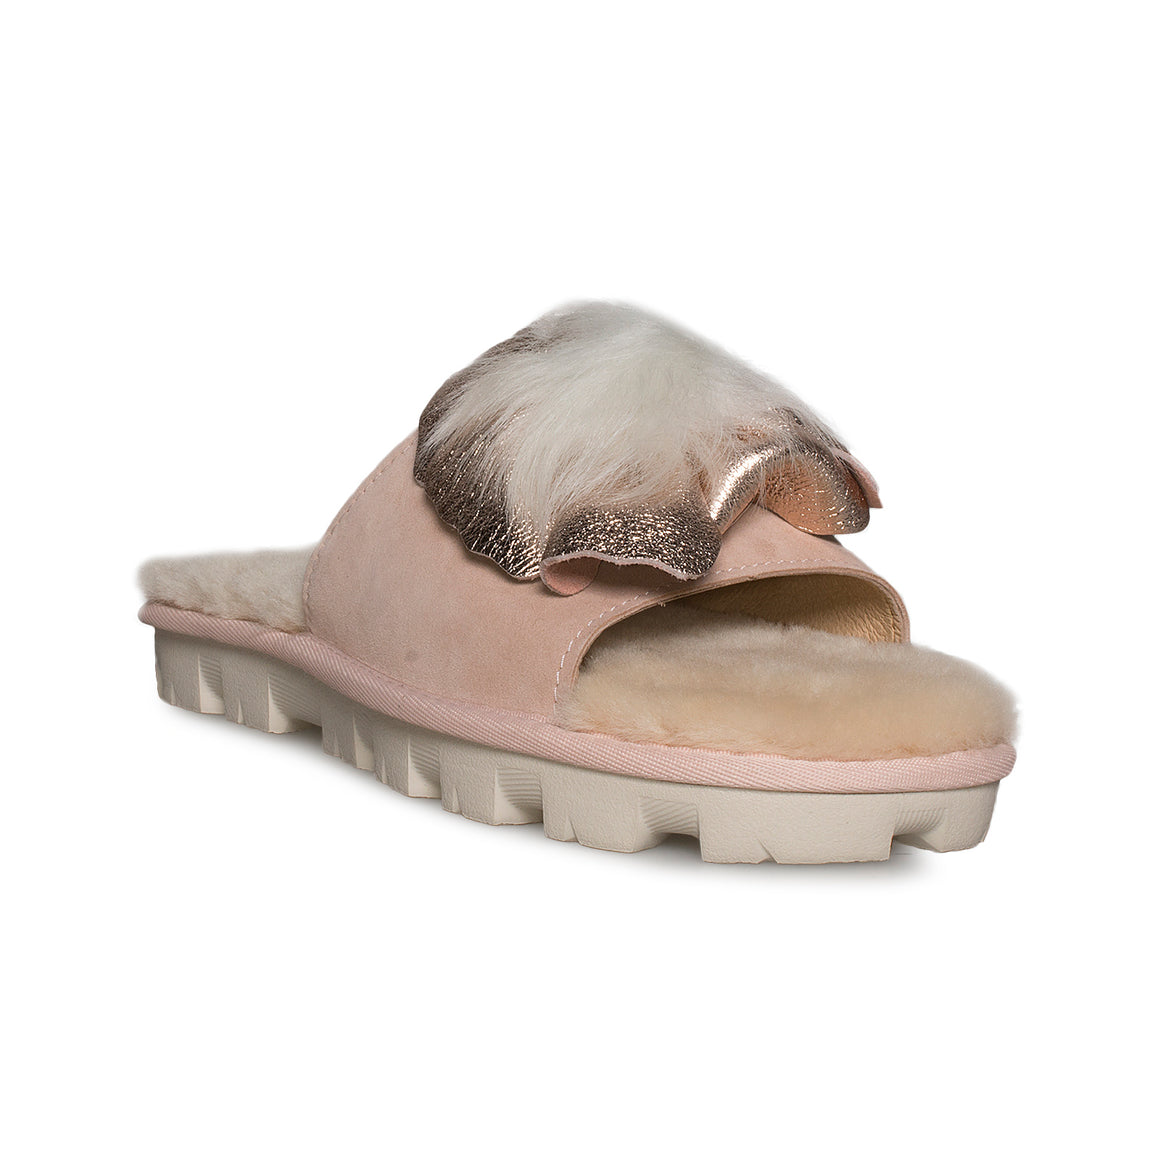 UGG Pretty Slide Rose Petal Sandals - Women's